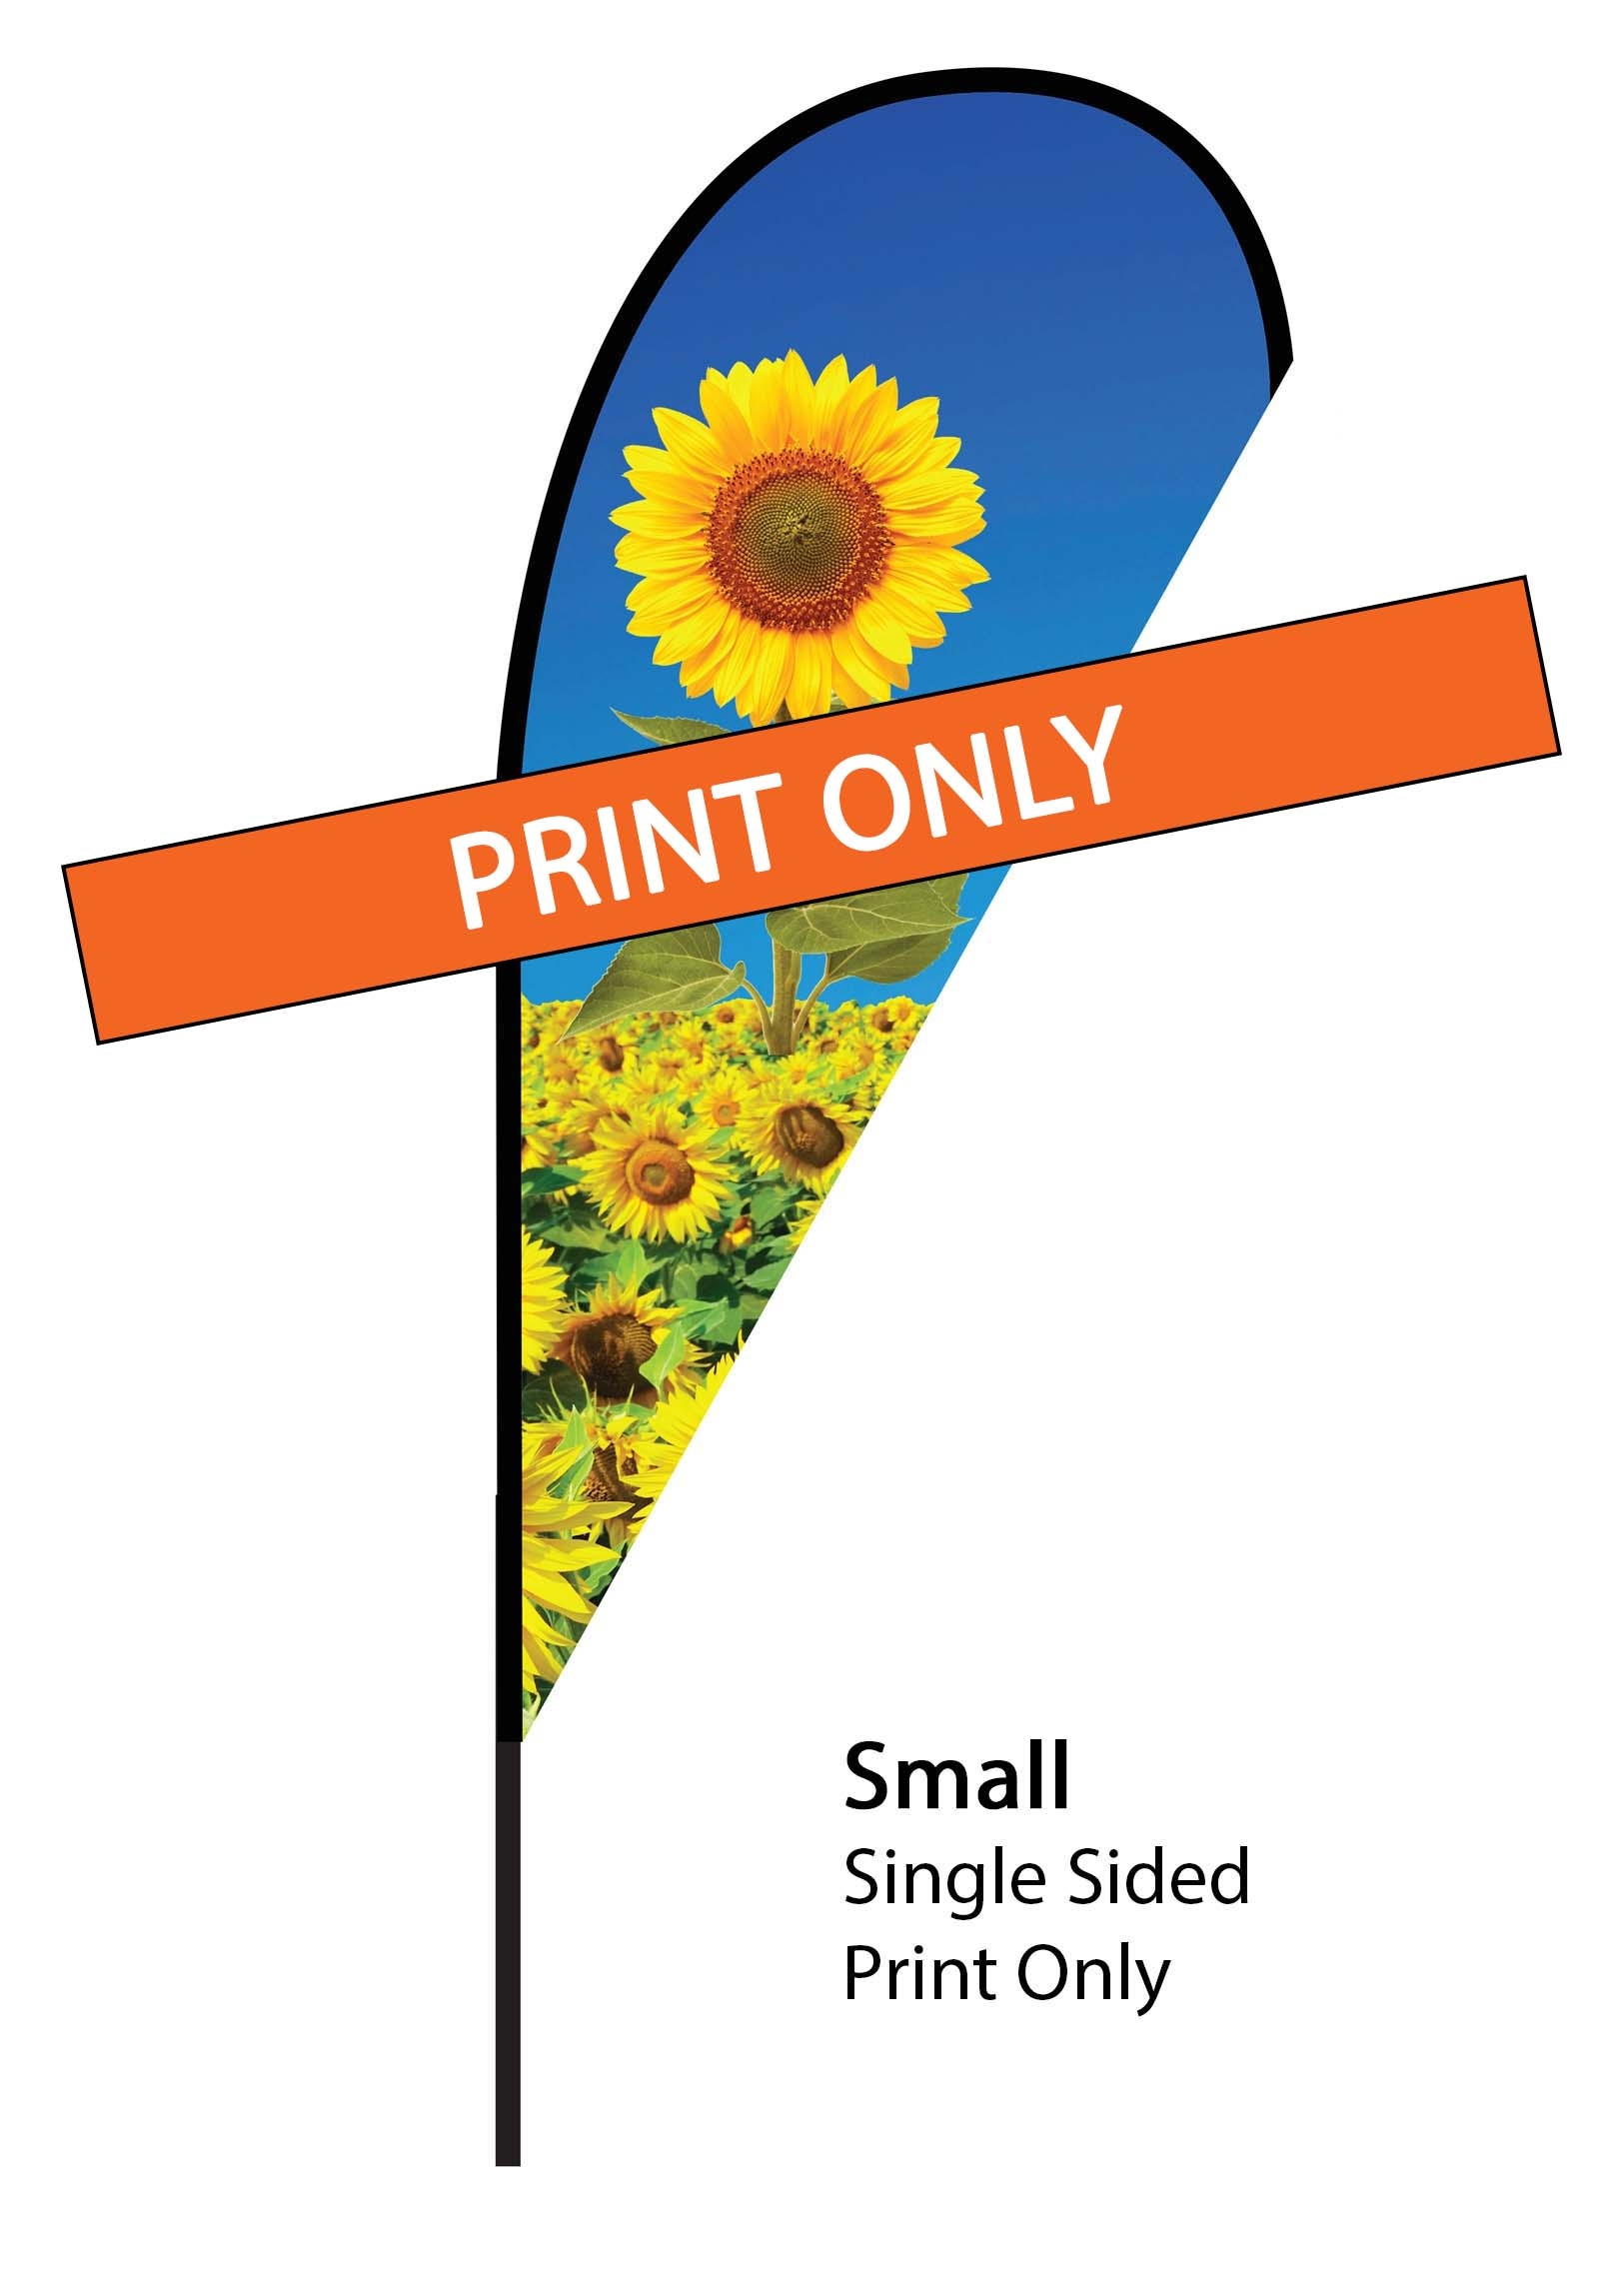 Teardrop Flag 7' Premium Single-Sided Print Only (Small)